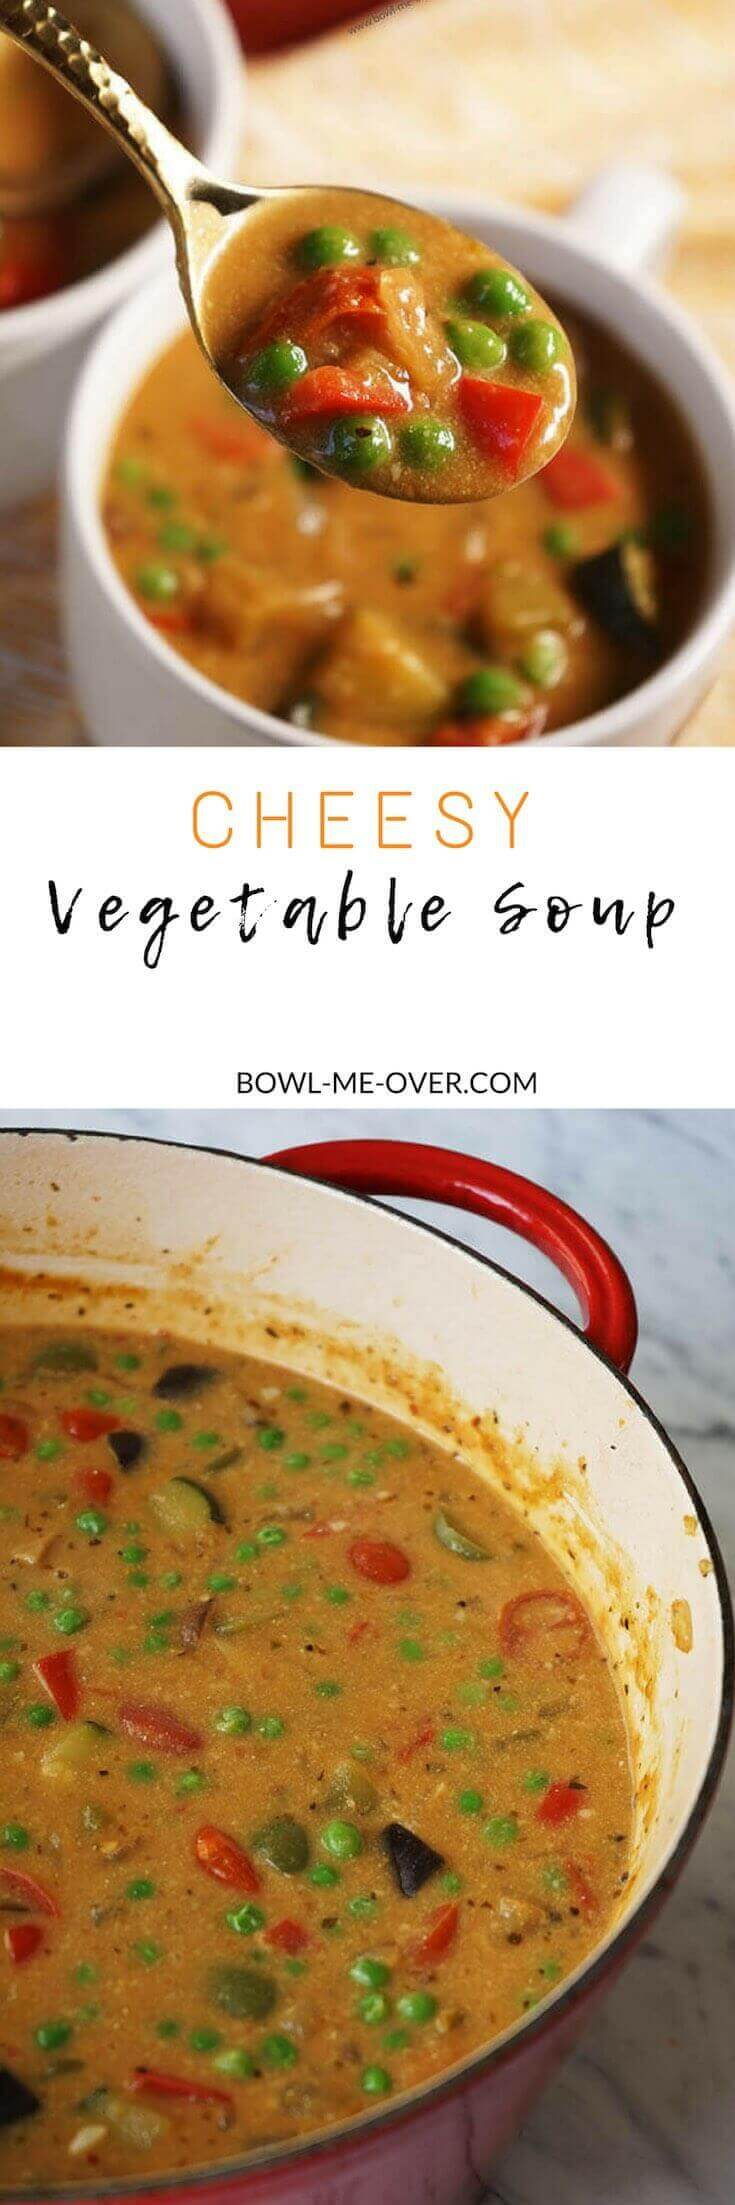 Earthy aromas, sautéed vegetables with rich cheesy sumptuousness is the best way to describe Cheesy Vegetable Soup!